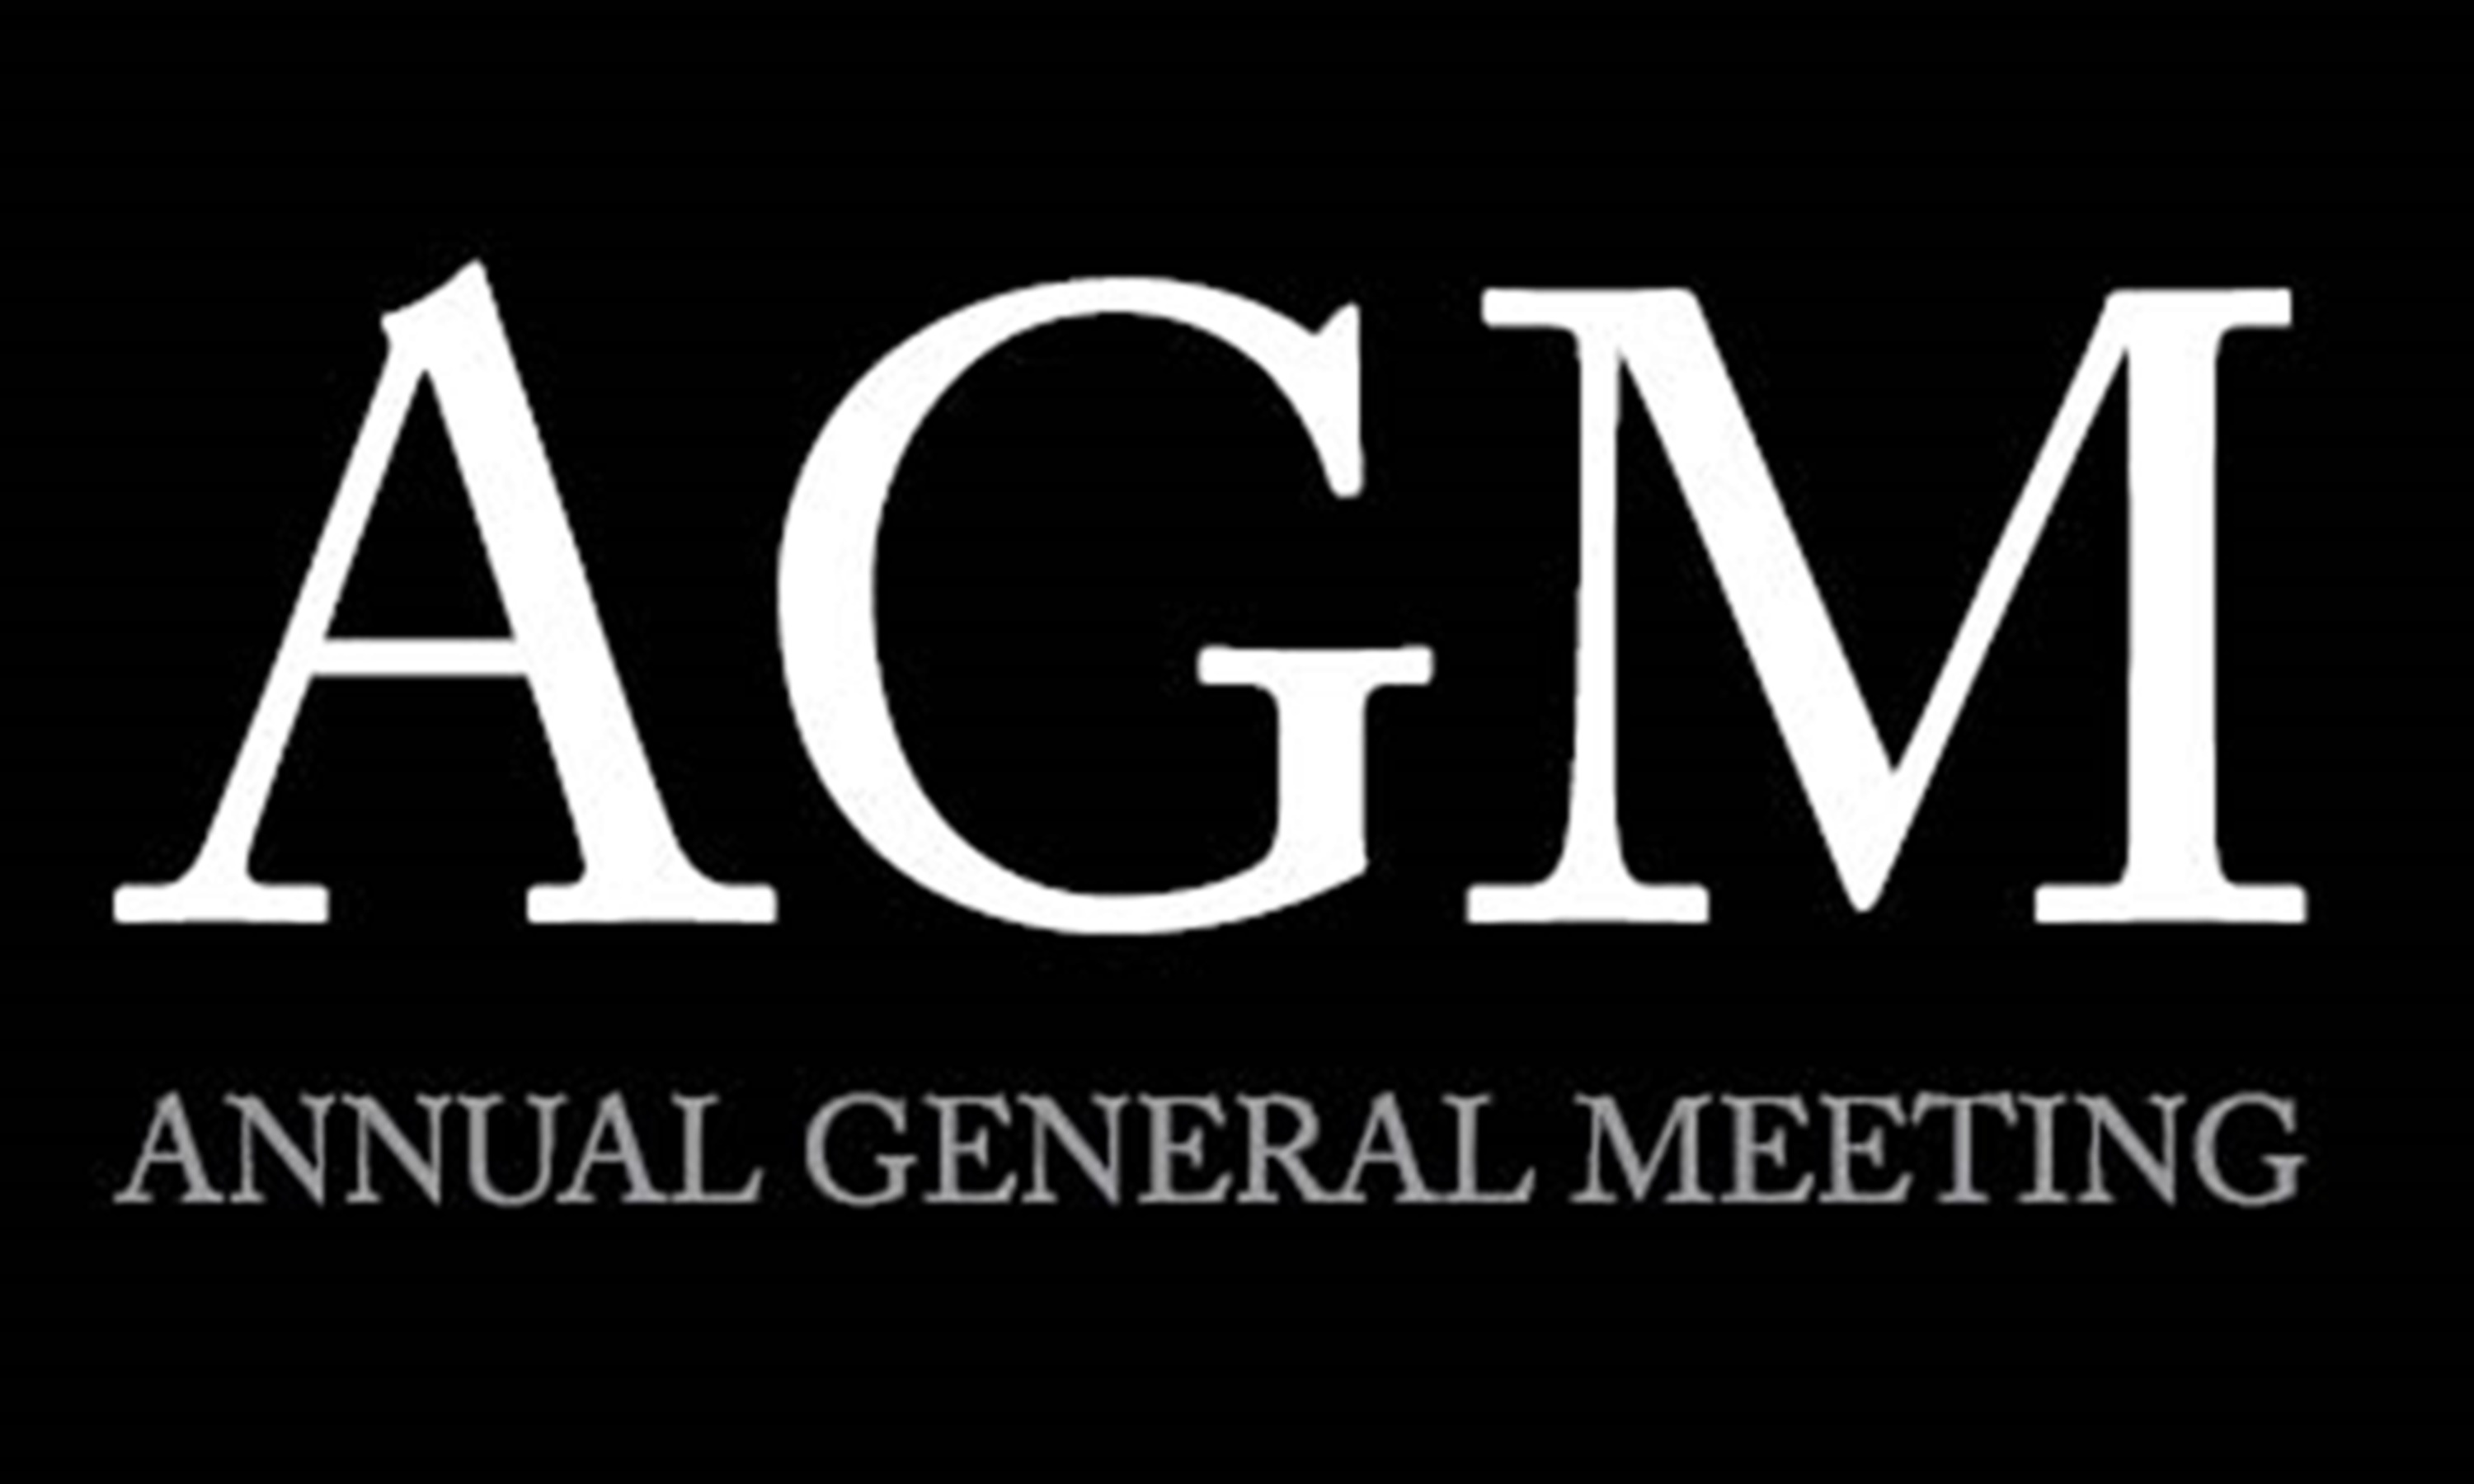 annual general meetings Knowing the difference between agm and egm will help you understand, which meeting is held by the company an annual general meeting (agm) is the meeting which should be organised by the company every year, to discus various business matters.